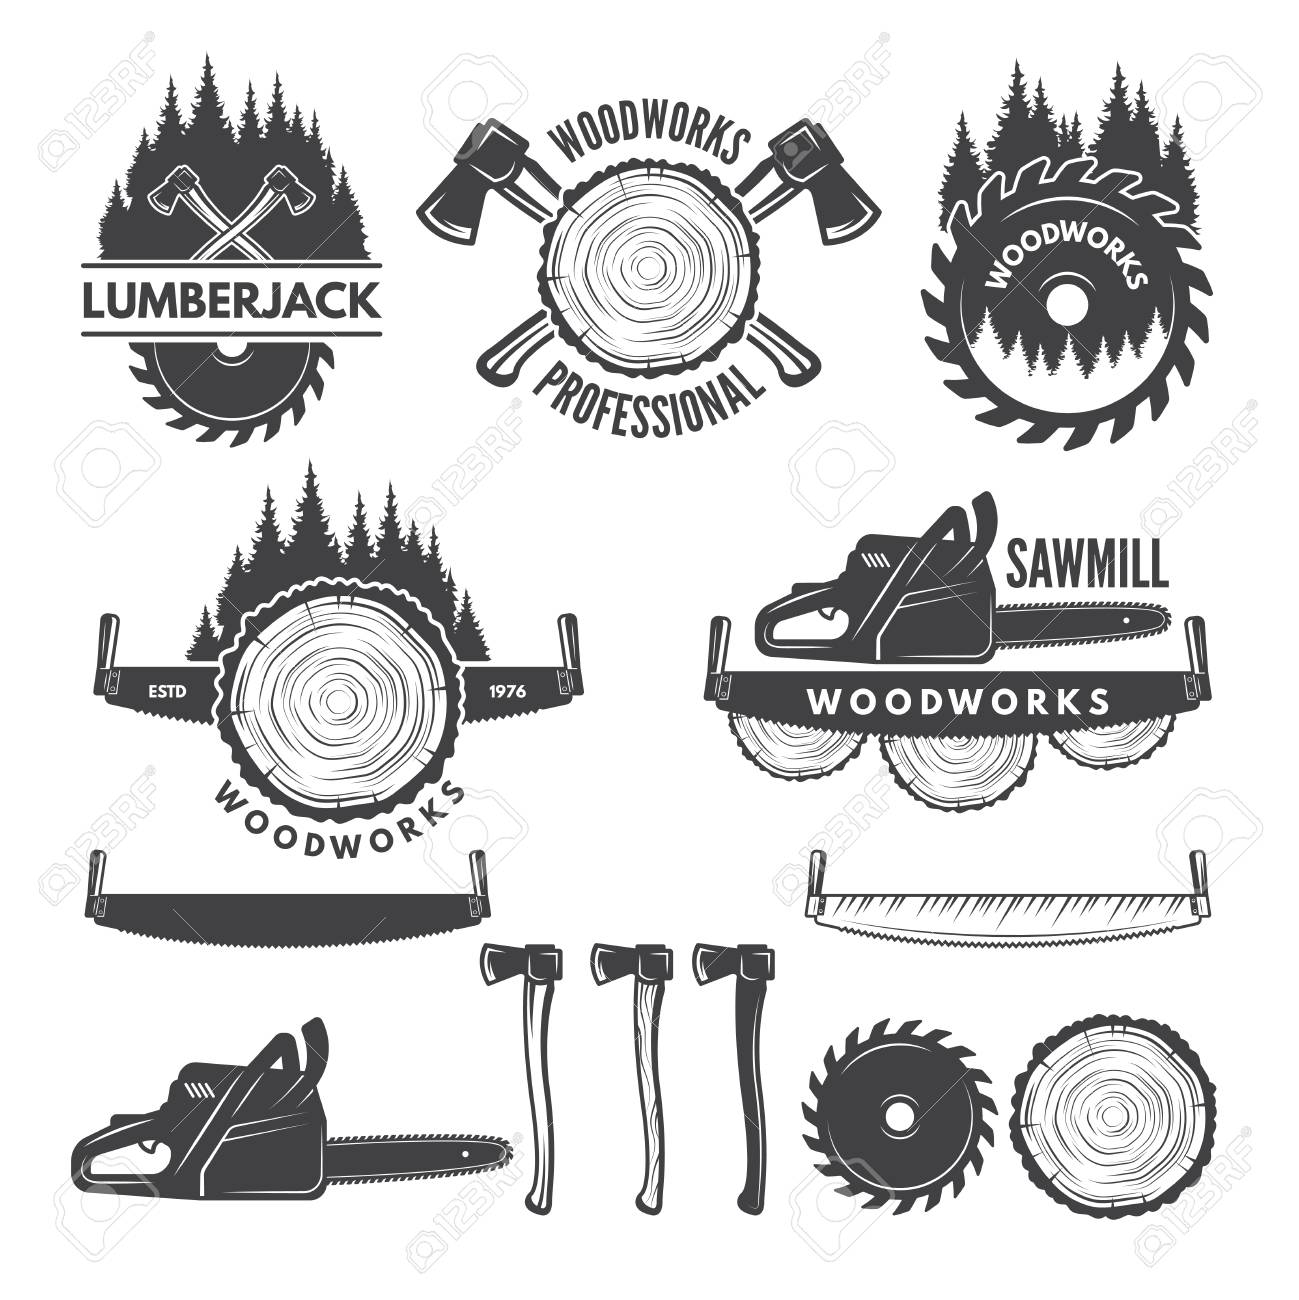 Monochrome labels set with lumberjack and pictures for wood industry. - 93385314